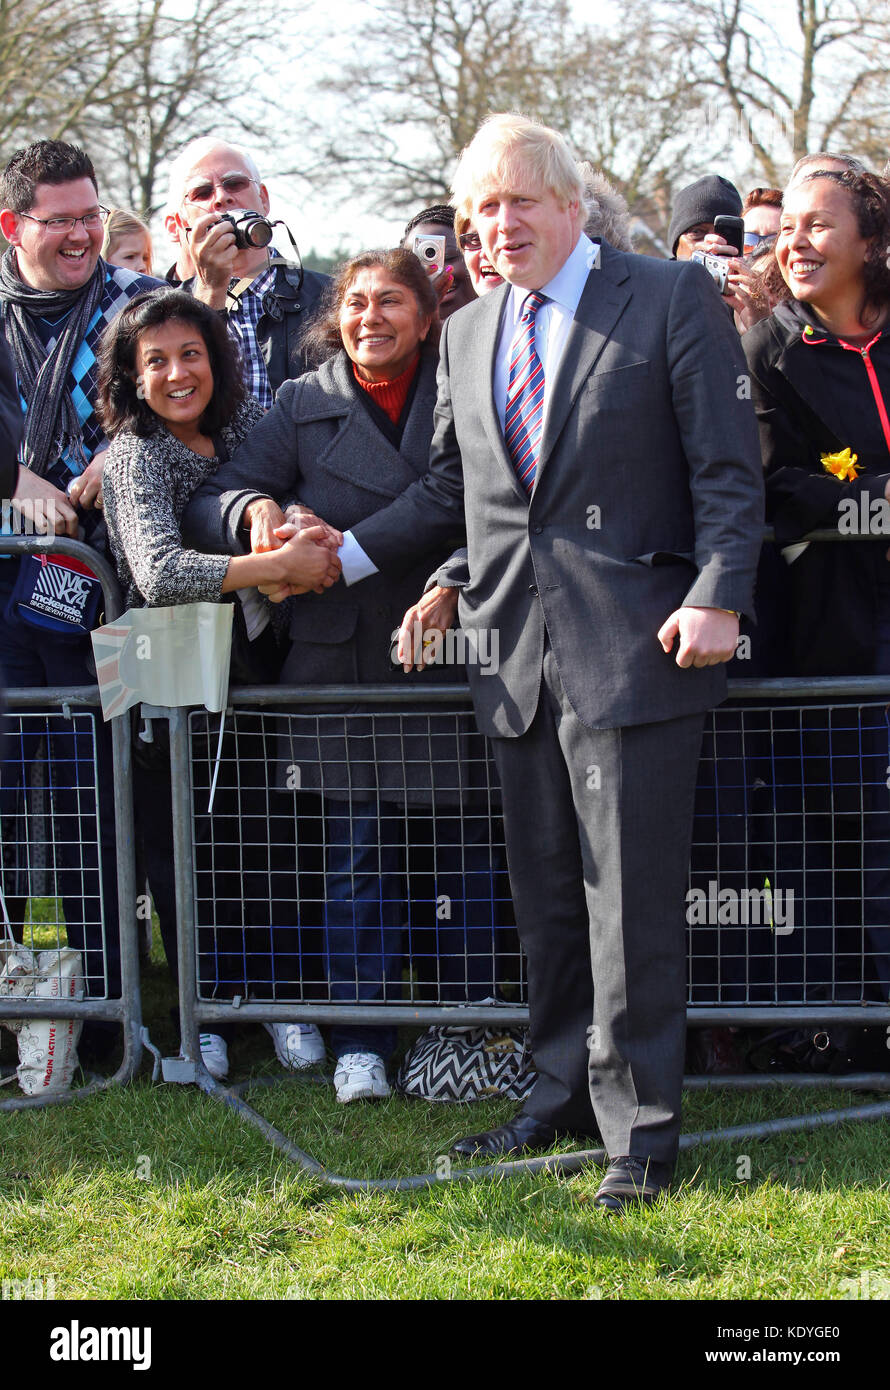 LONDON, ENGLAND - MARCH 29: Crowds cheer as Queen Elizabeth II arrives in Valentine's Park Redbridge as part of Stock Photo